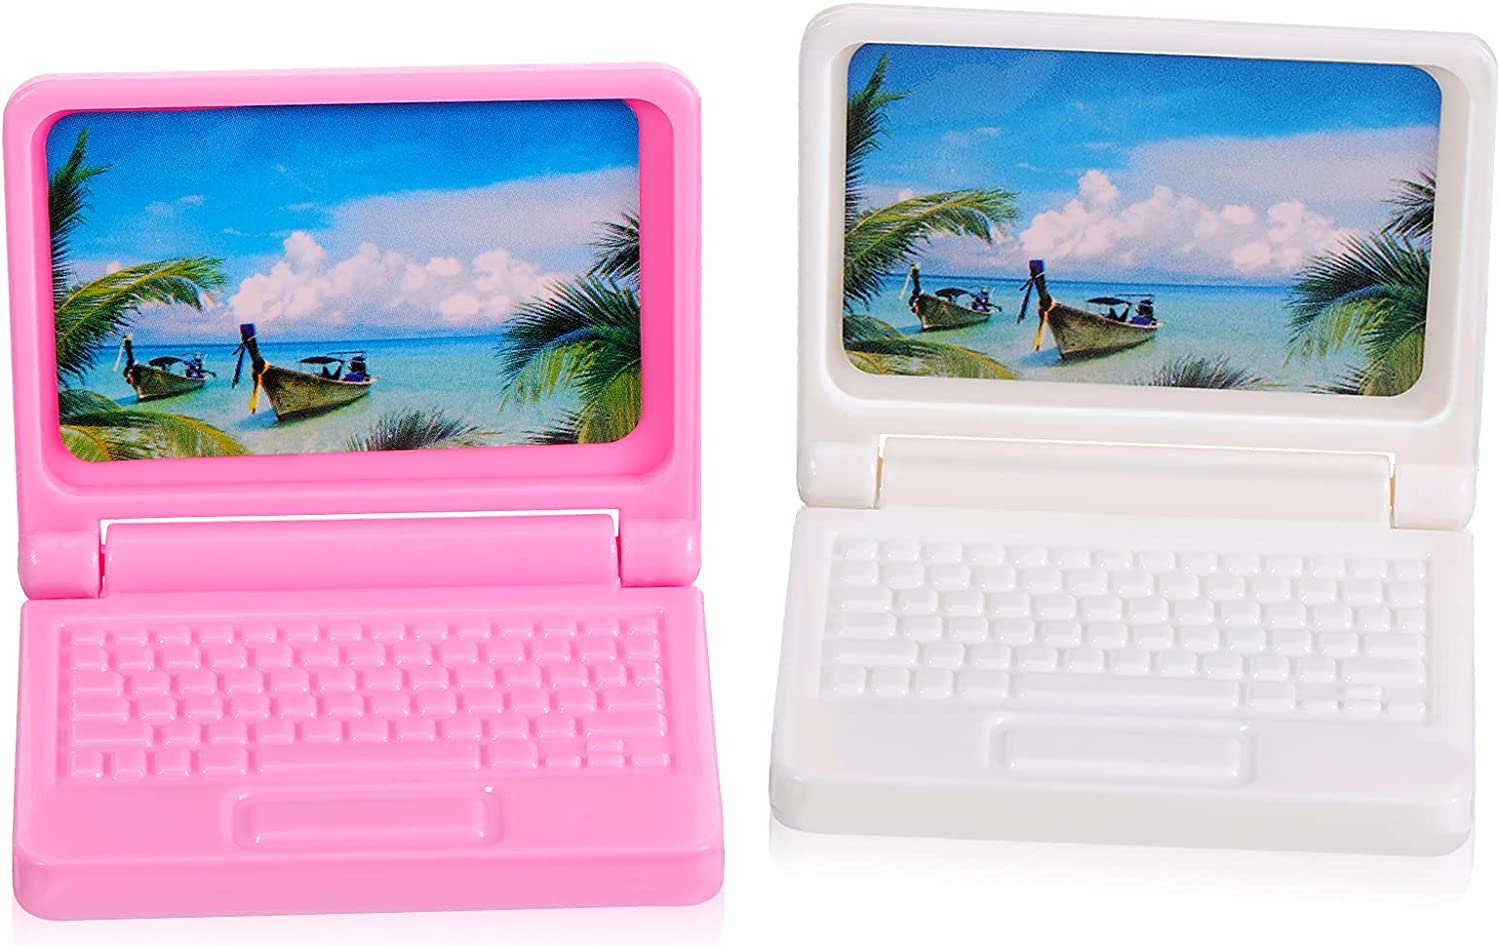 Chalyna 2 Pieces Dollhouse Laptop Toys Dollhouse Mini Laptops Scene Miniatures Computers Dollhouse Miniature Lovely Folding Laptop for Dolls House Accessories, Pink and White